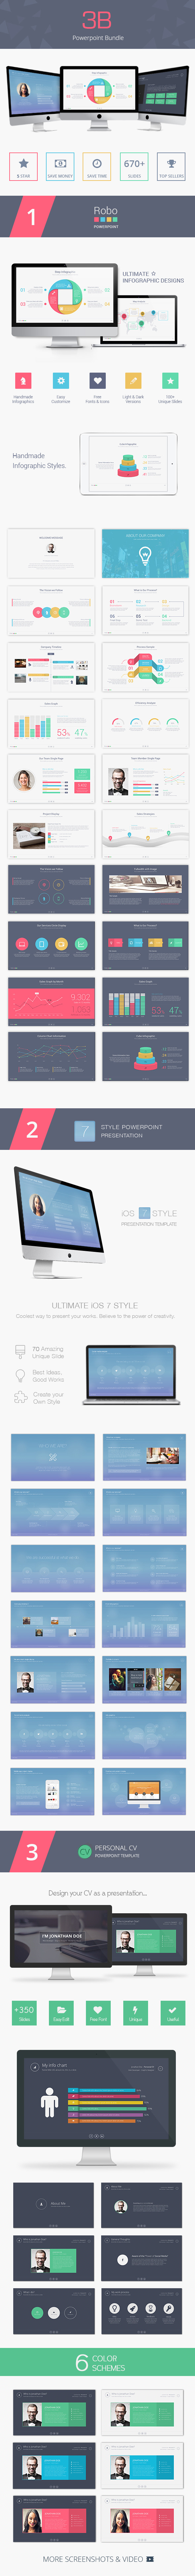 GraphicRiver 3B Powerpoint Bundle 9699250